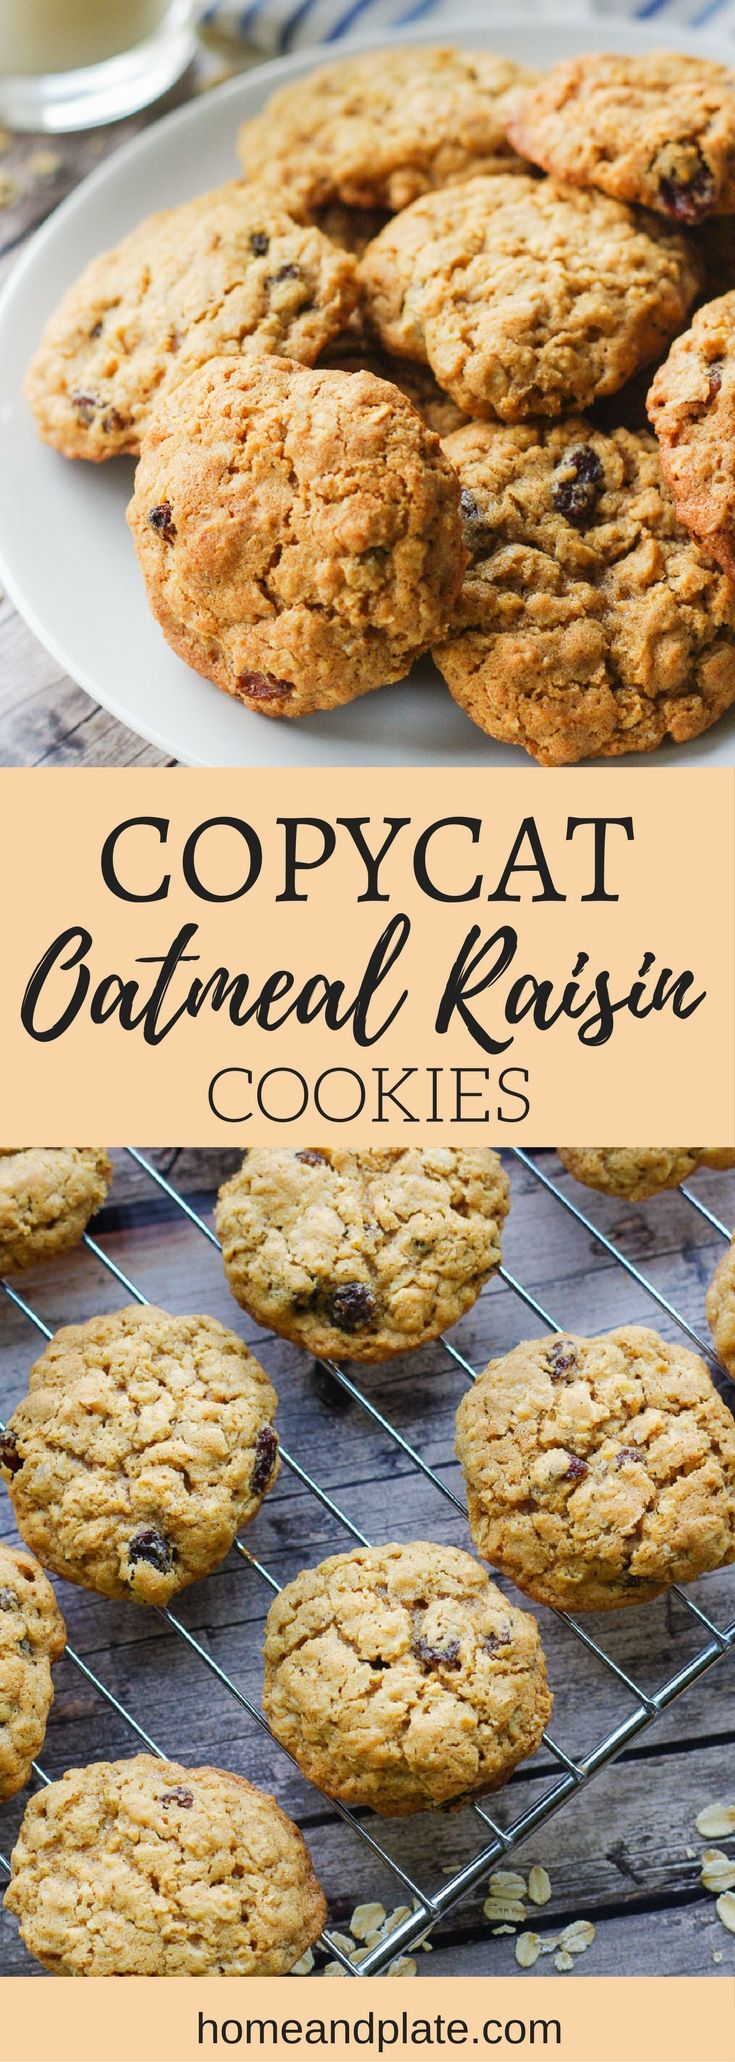 Copycat Oatmeal Raisin Cookies | www.homeandplate.com | Soft and chewy, these old fashioned copycat oatmeal raisin cookies are better than what you get at McDonald's, Panera or Subway. #cookies #oatmealraisincookies #copycatcookies #christmascookies